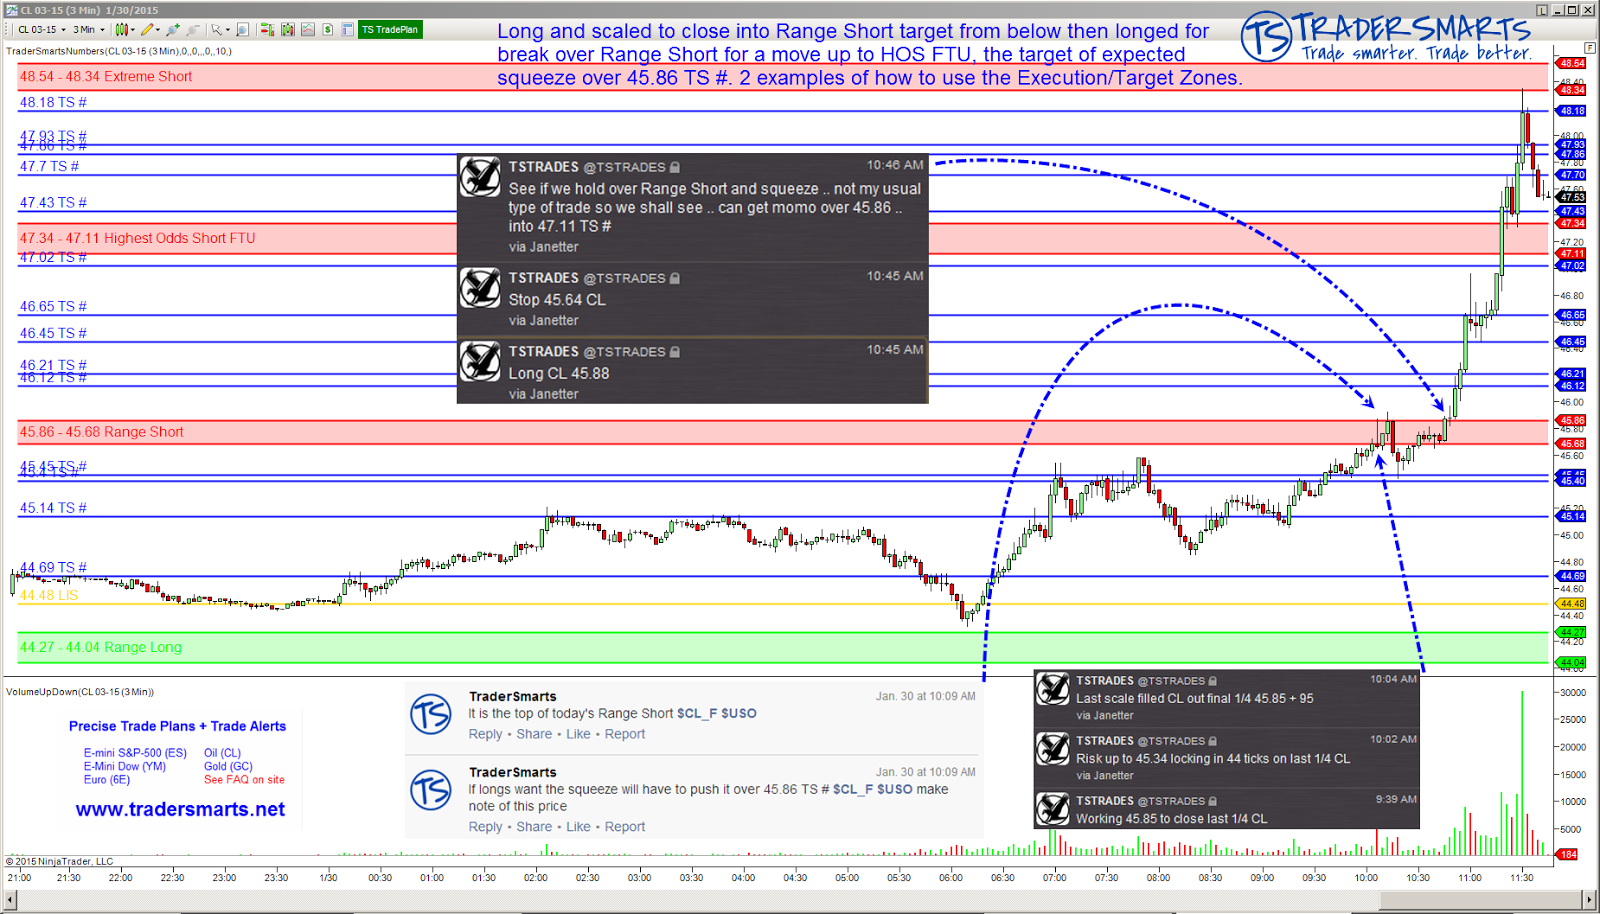 Futures options trading examples